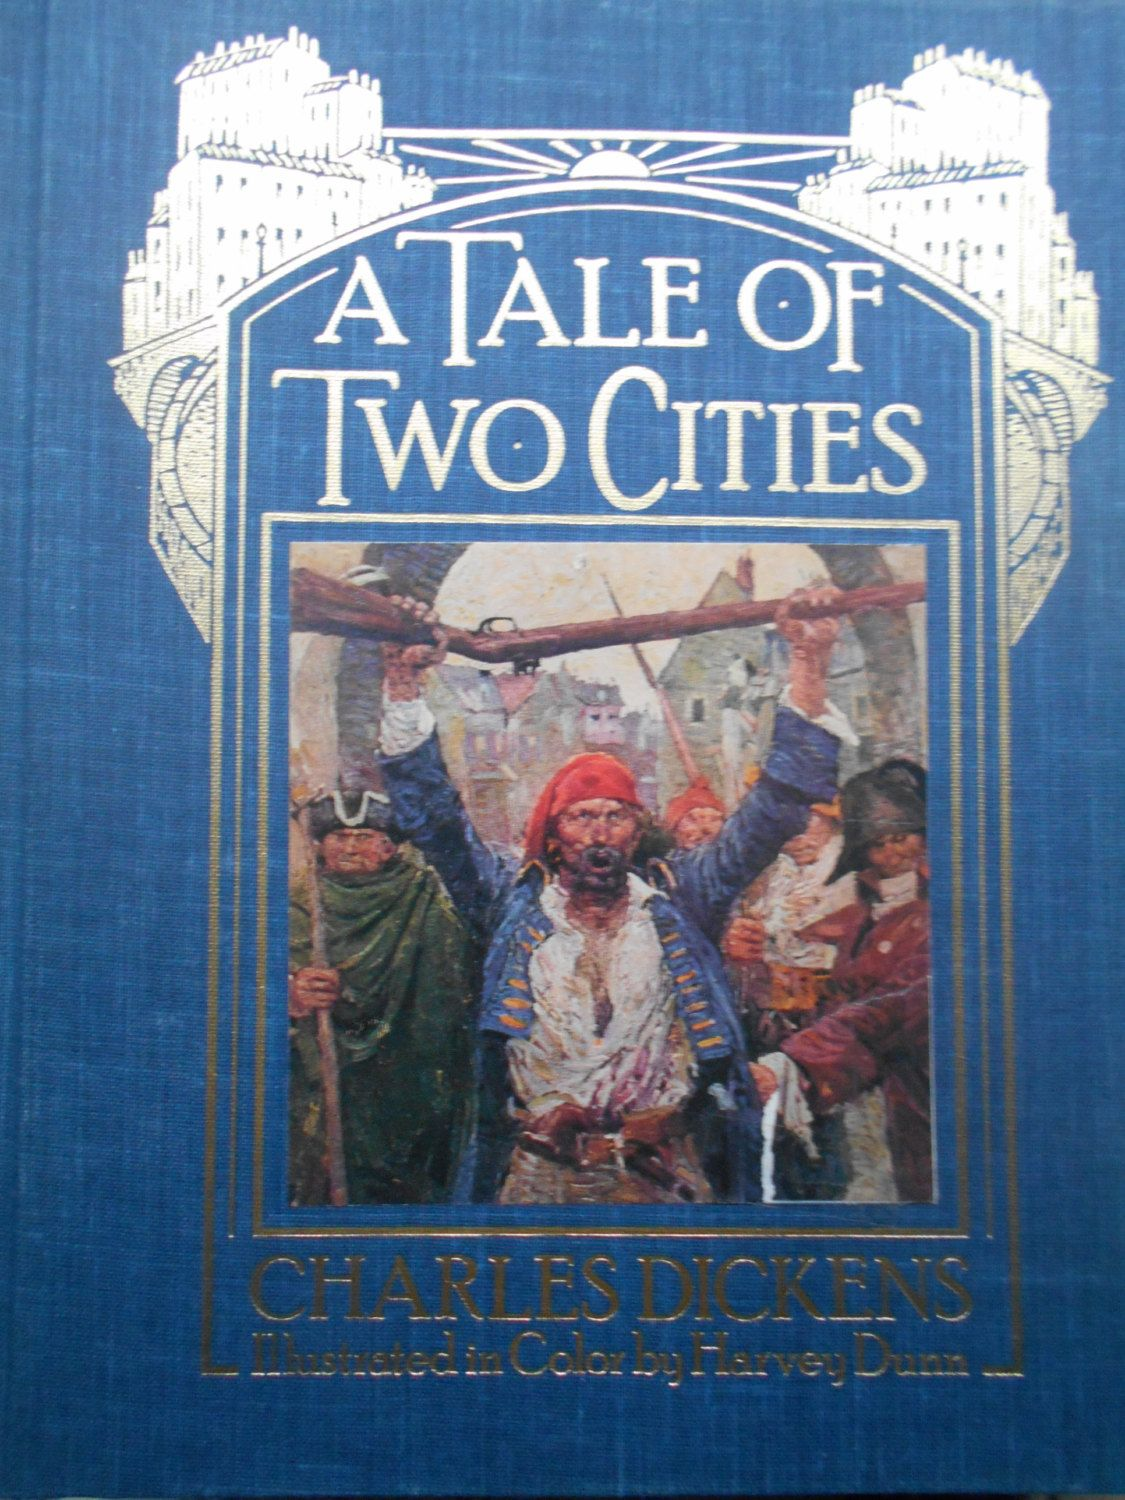 Tale of two cities essay topics